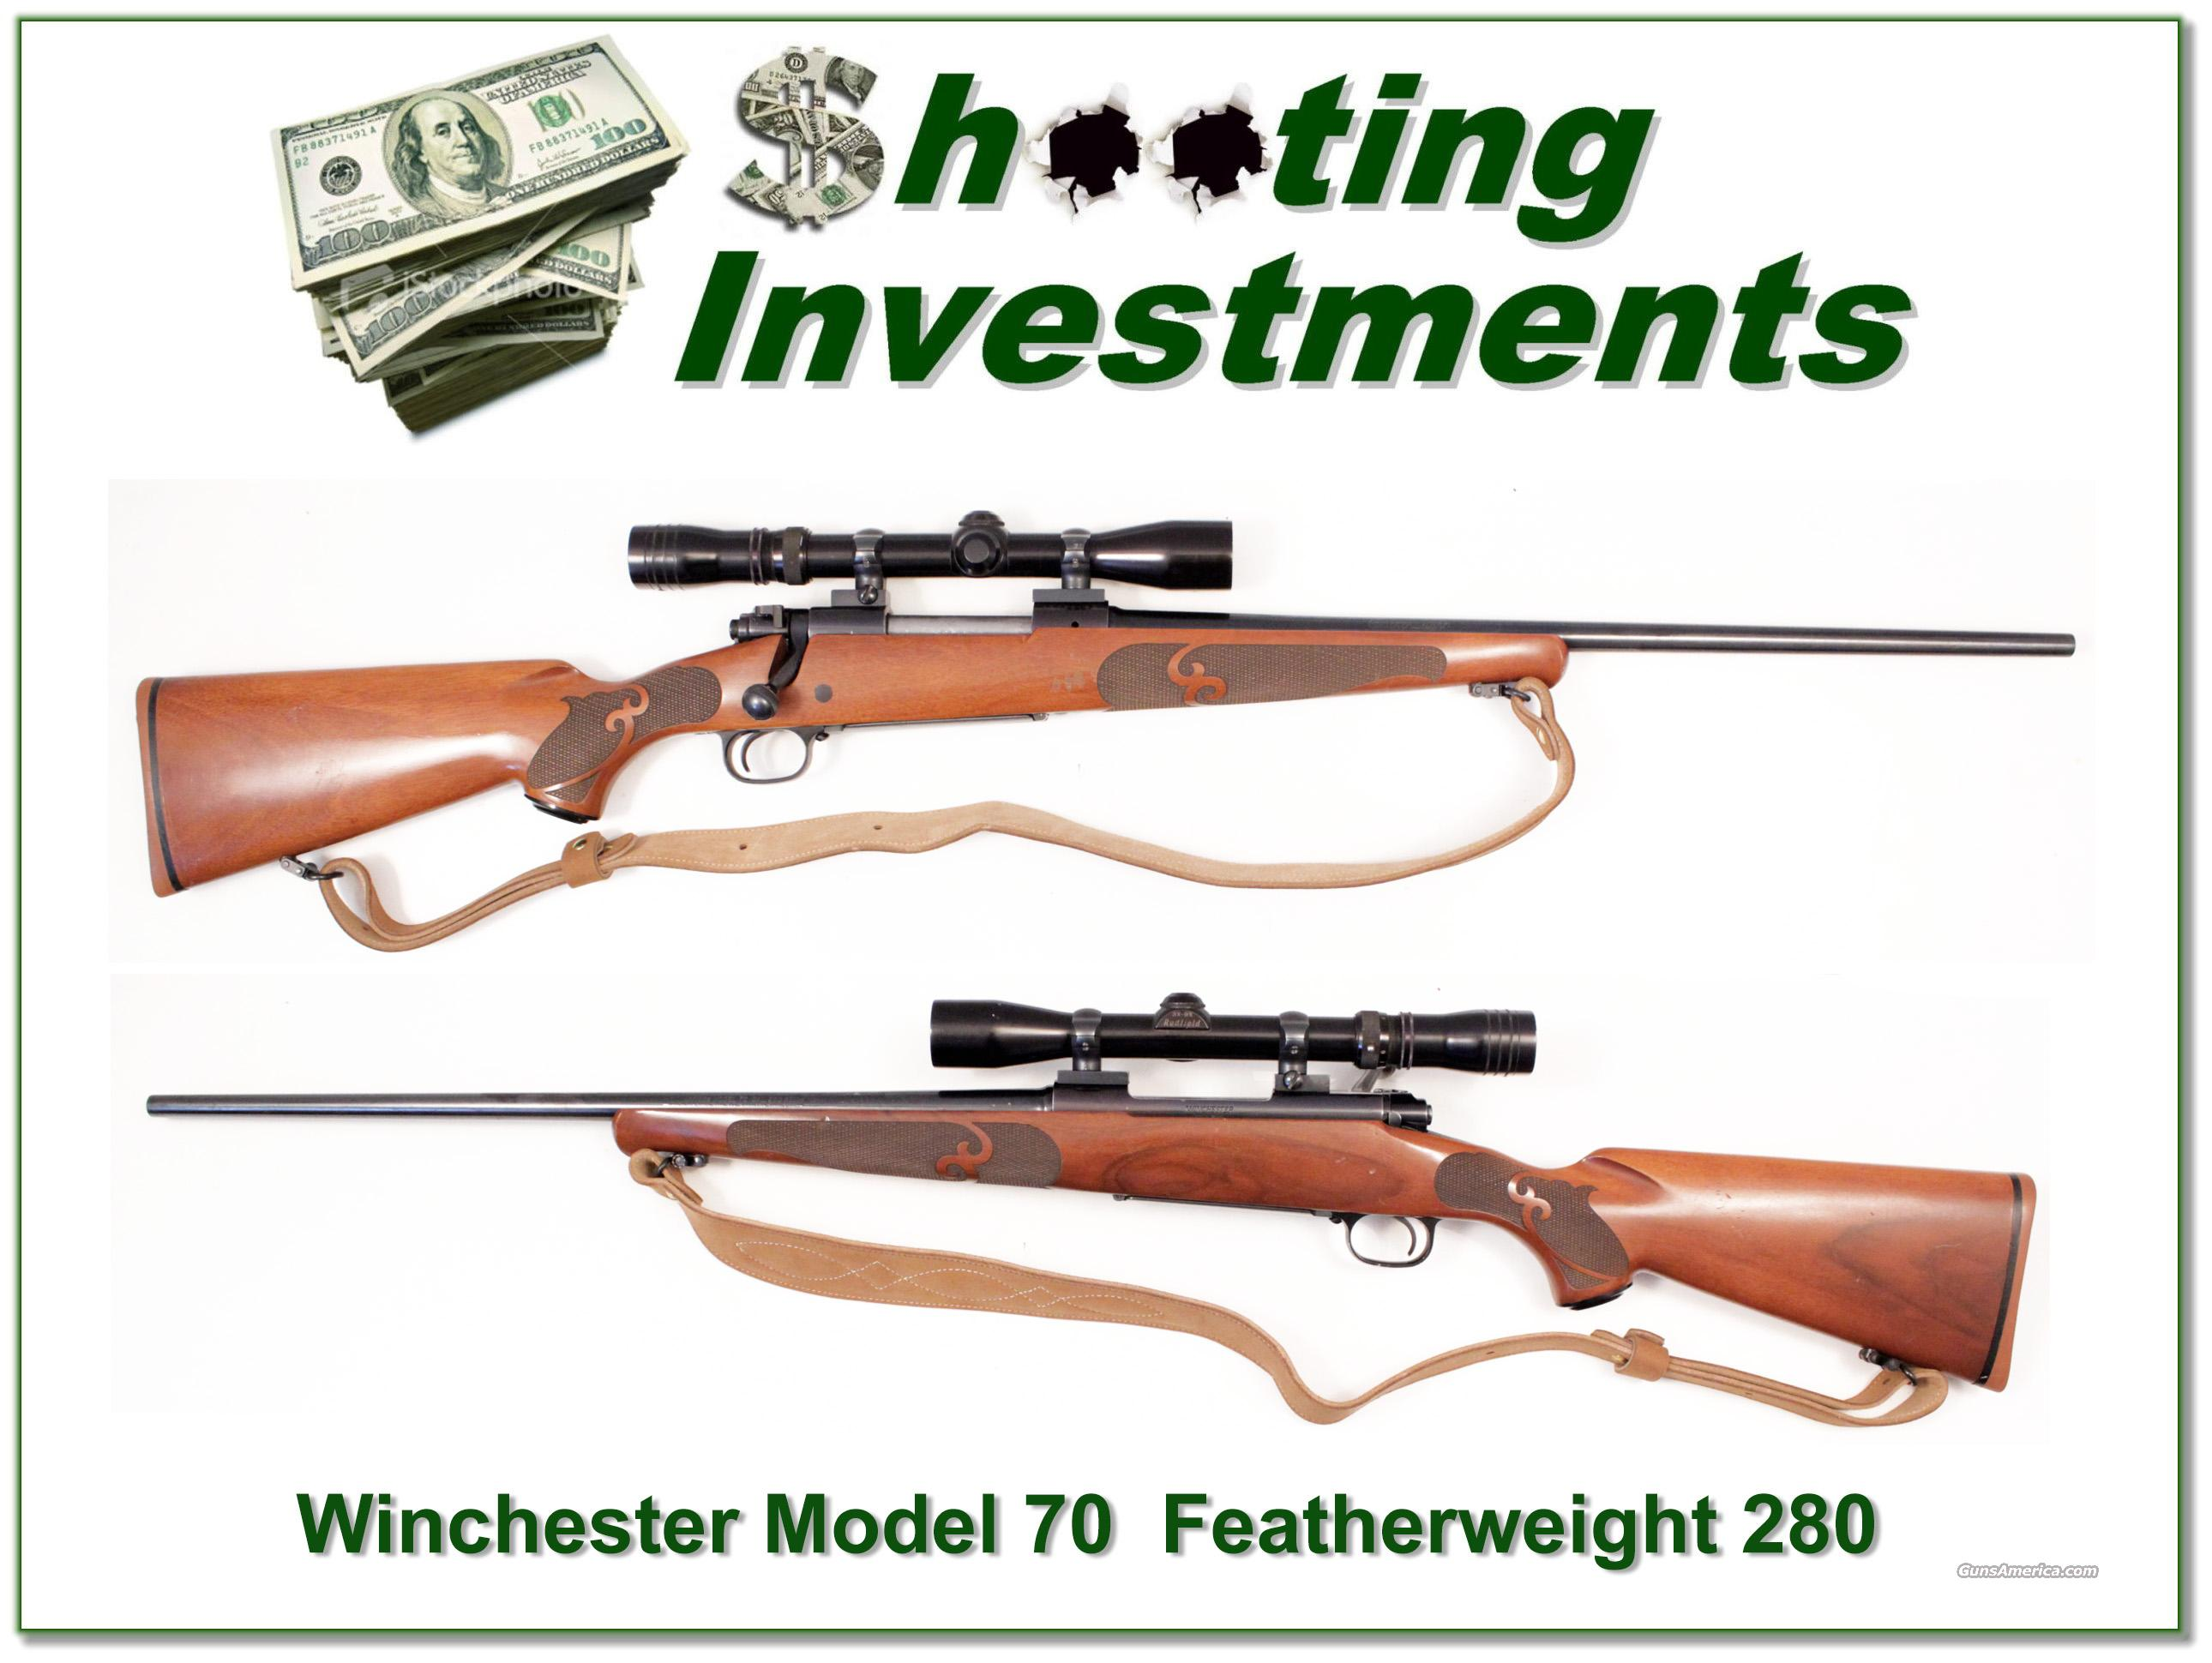 Winchester Model 70 Featherweight 280 Remington RARE  Guns > Rifles > Winchester Rifles - Modern Bolt/Auto/Single > Model 70 > Post-64